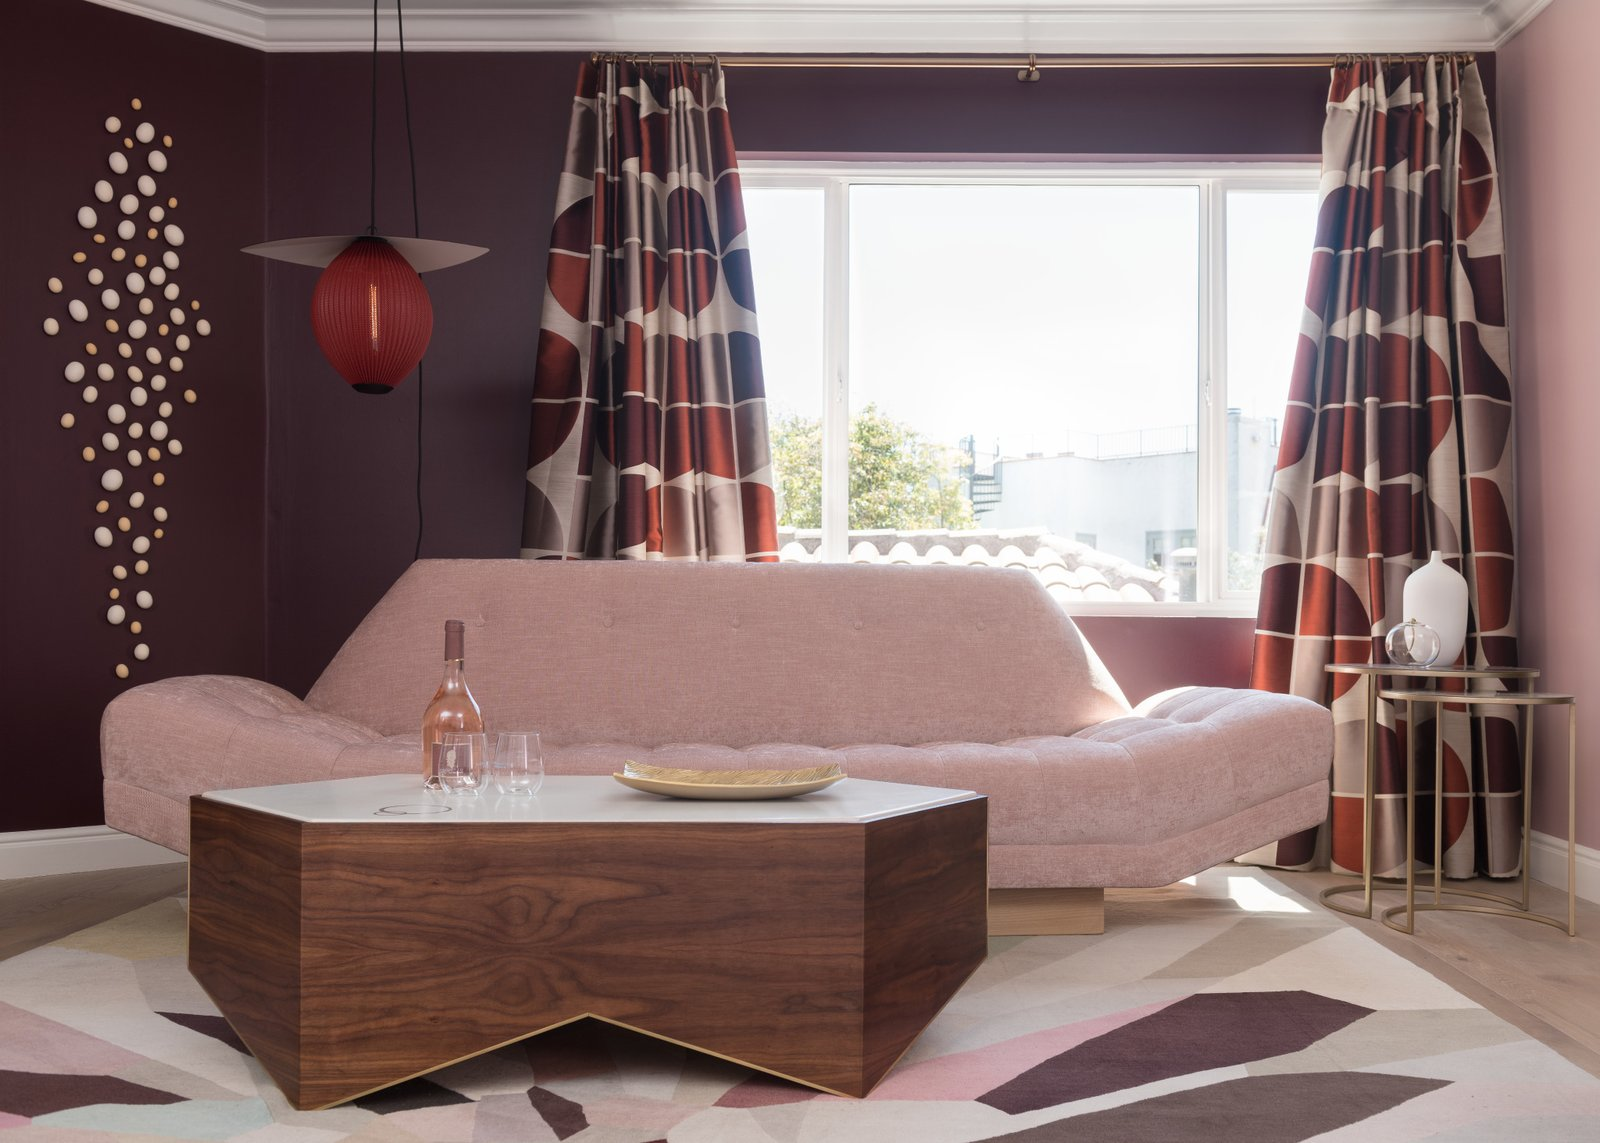 designer-melanie-coddington-of-coddington-design-tranformed-the-family-room-into-her-unapologetically-pink-rose-lounge-inspired-by-edginess-and-fueled-by-french-rose-wine-the-lounge-is-modern-opulent-and-without-a-doubt-unapologetically-pin.jpg